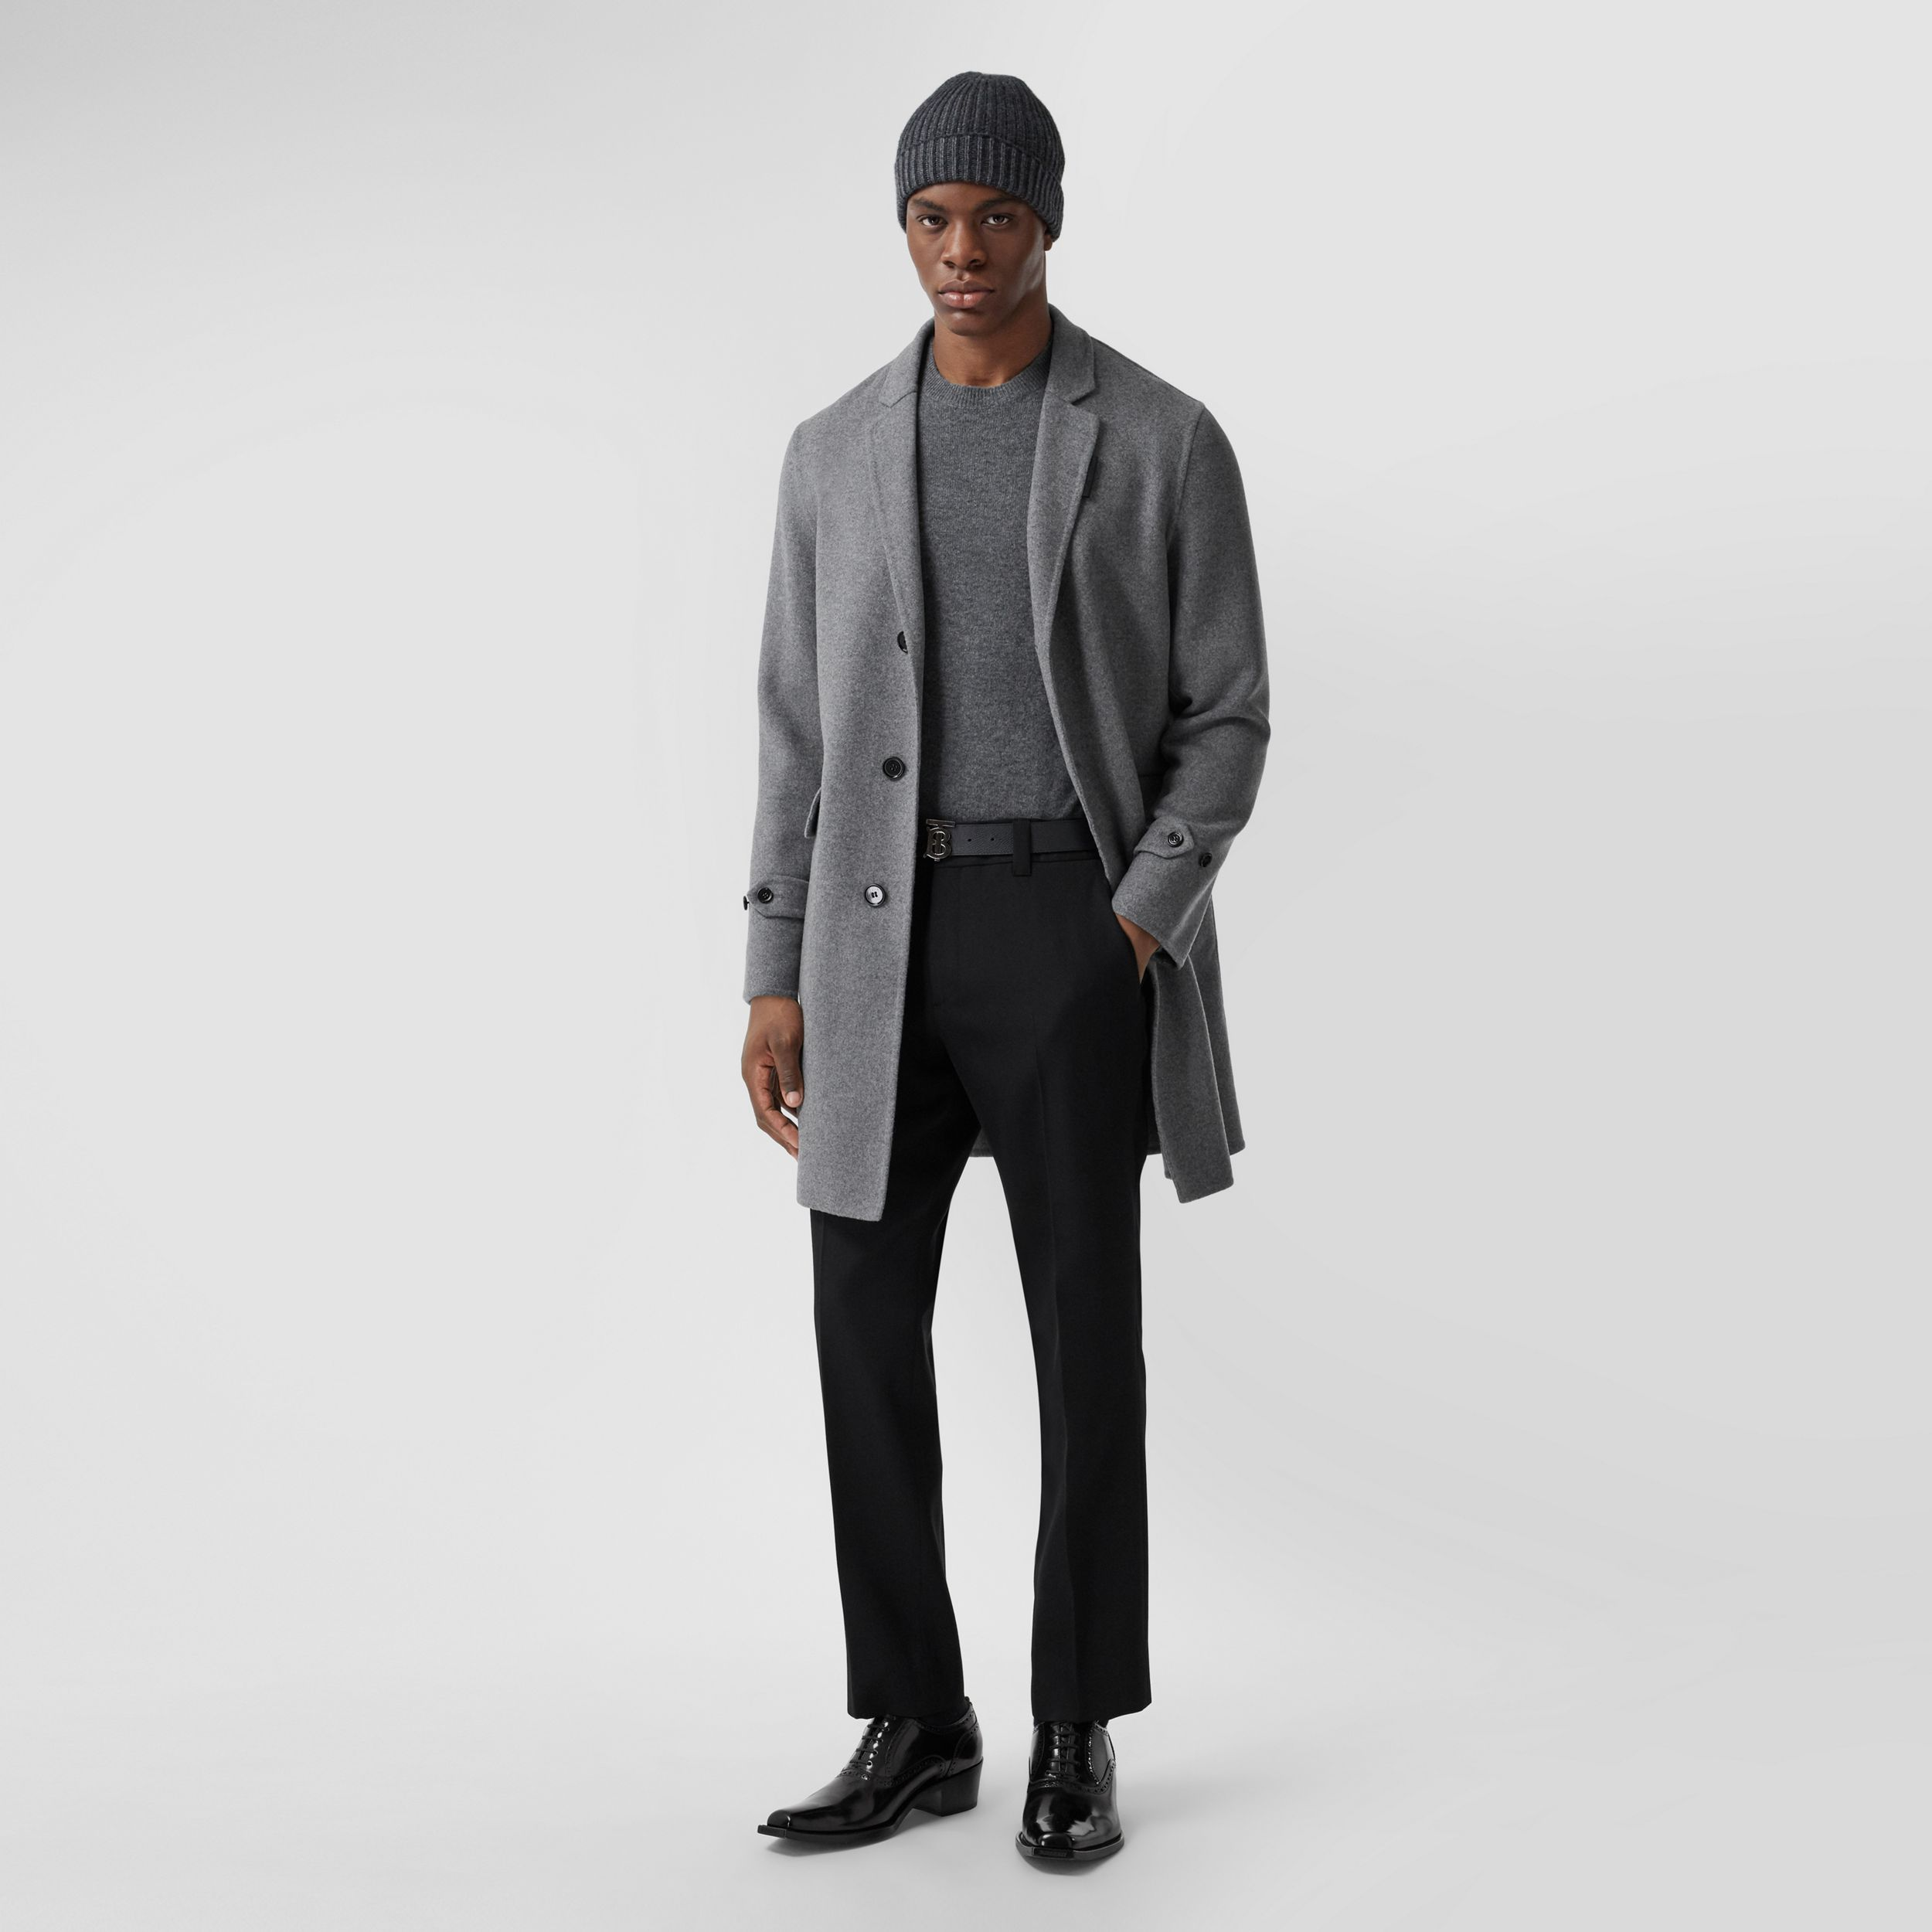 Wool Cashmere Lab Coat in Charcoal - Men | Burberry - 1